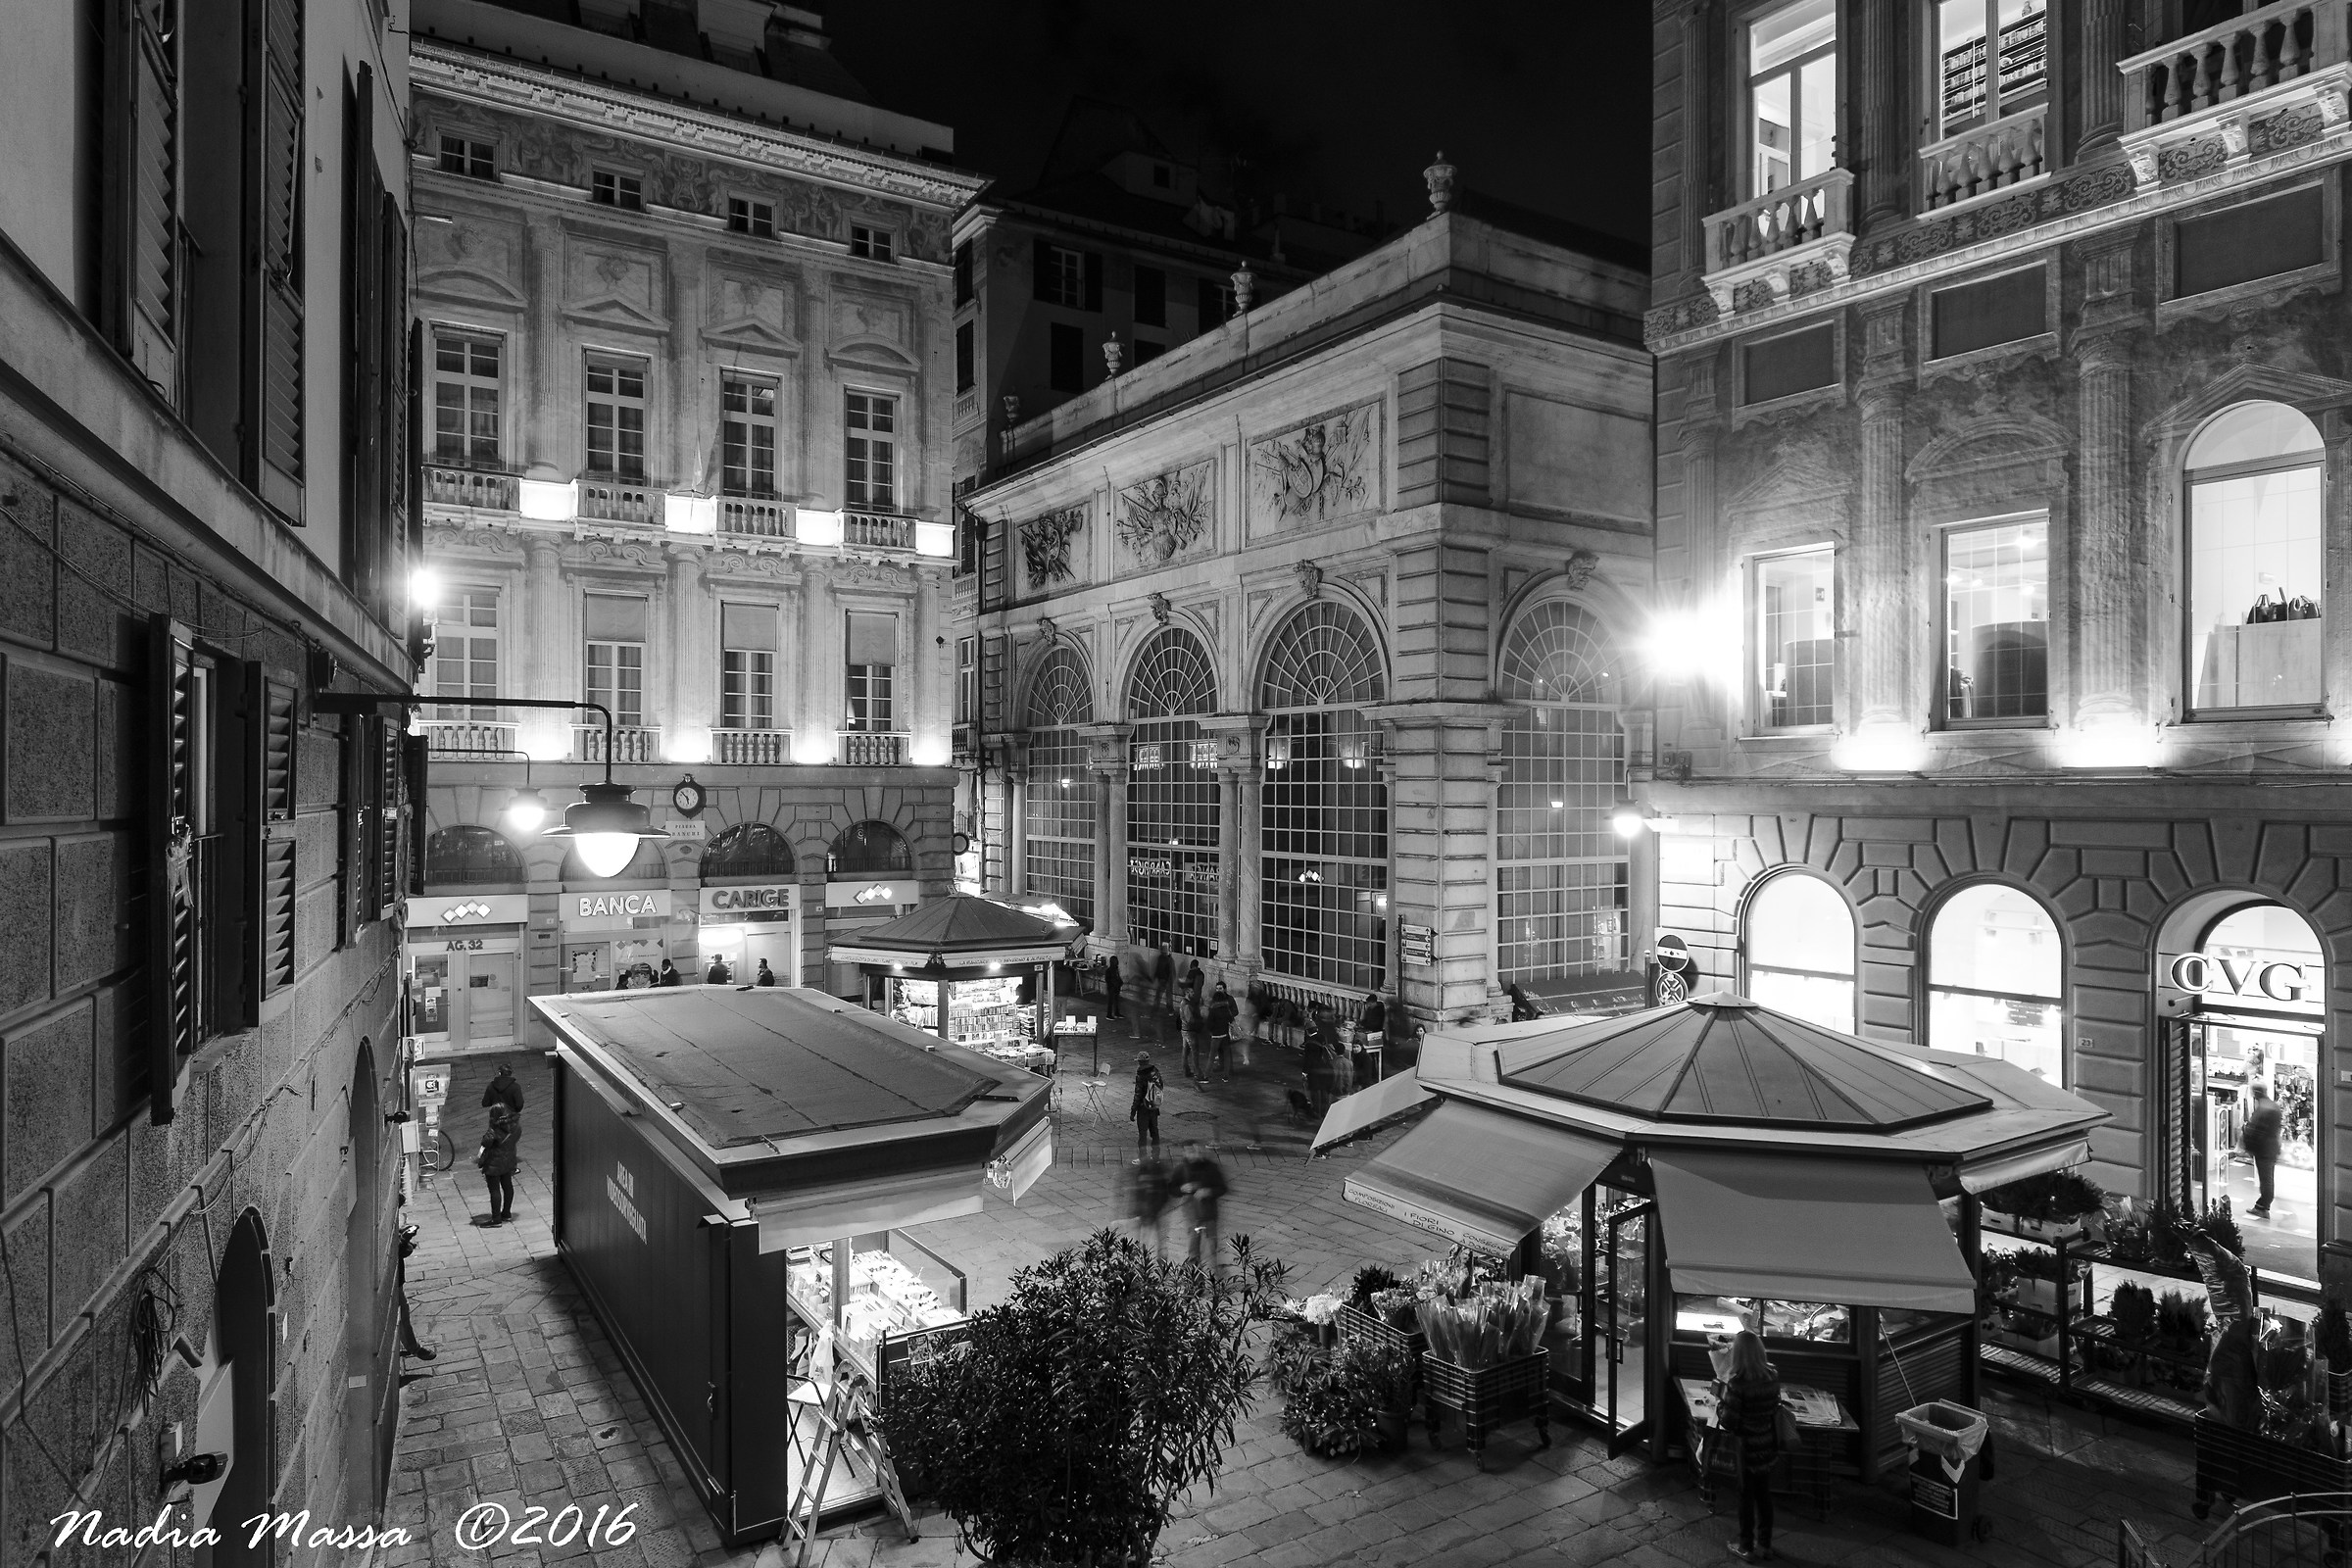 Piazza night benches...